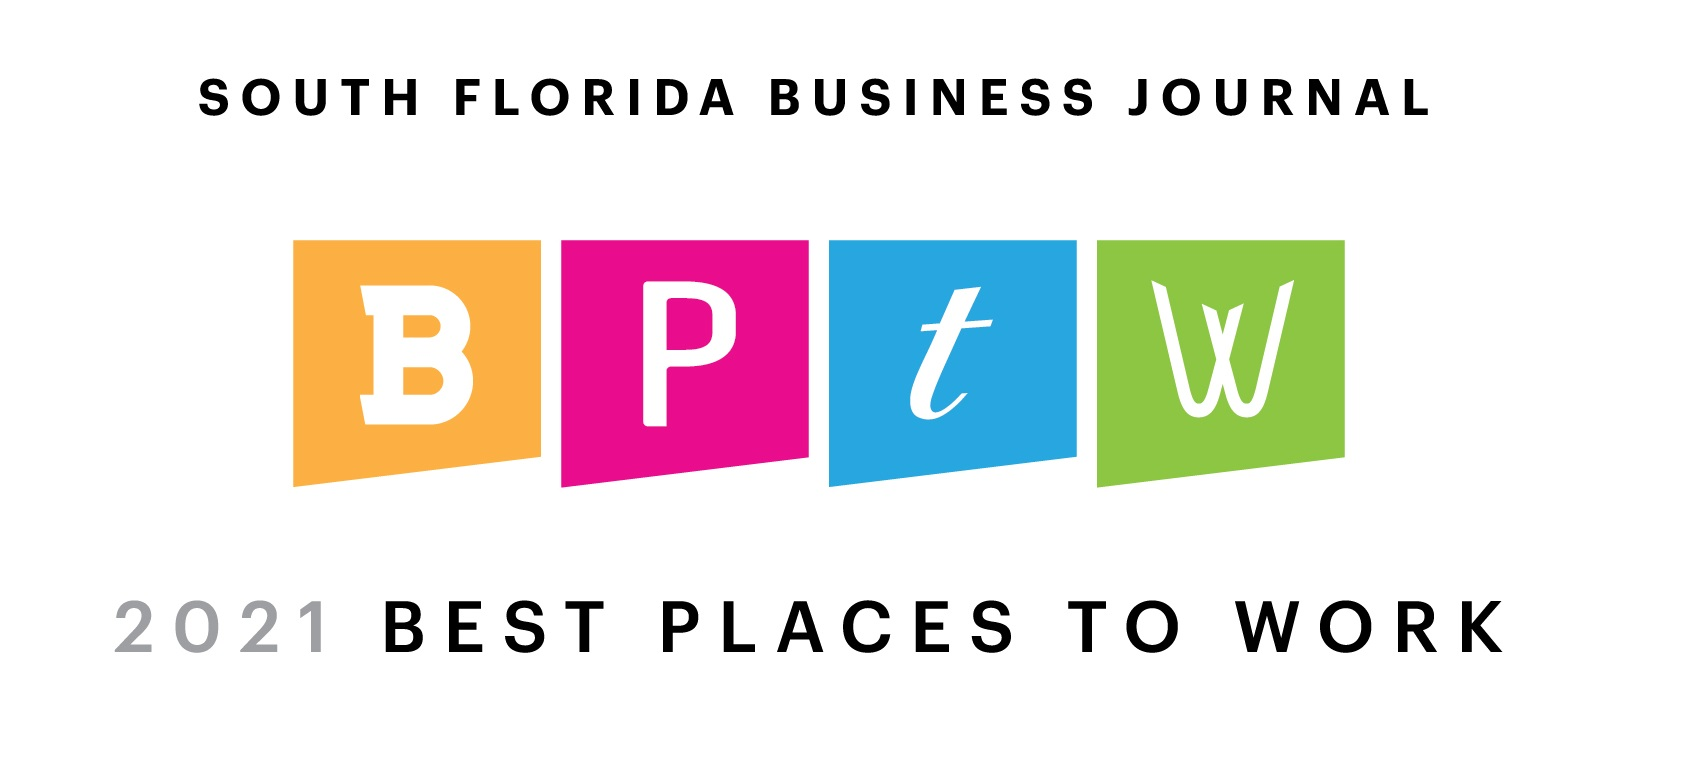 South Florida Business Journal 2021 Award